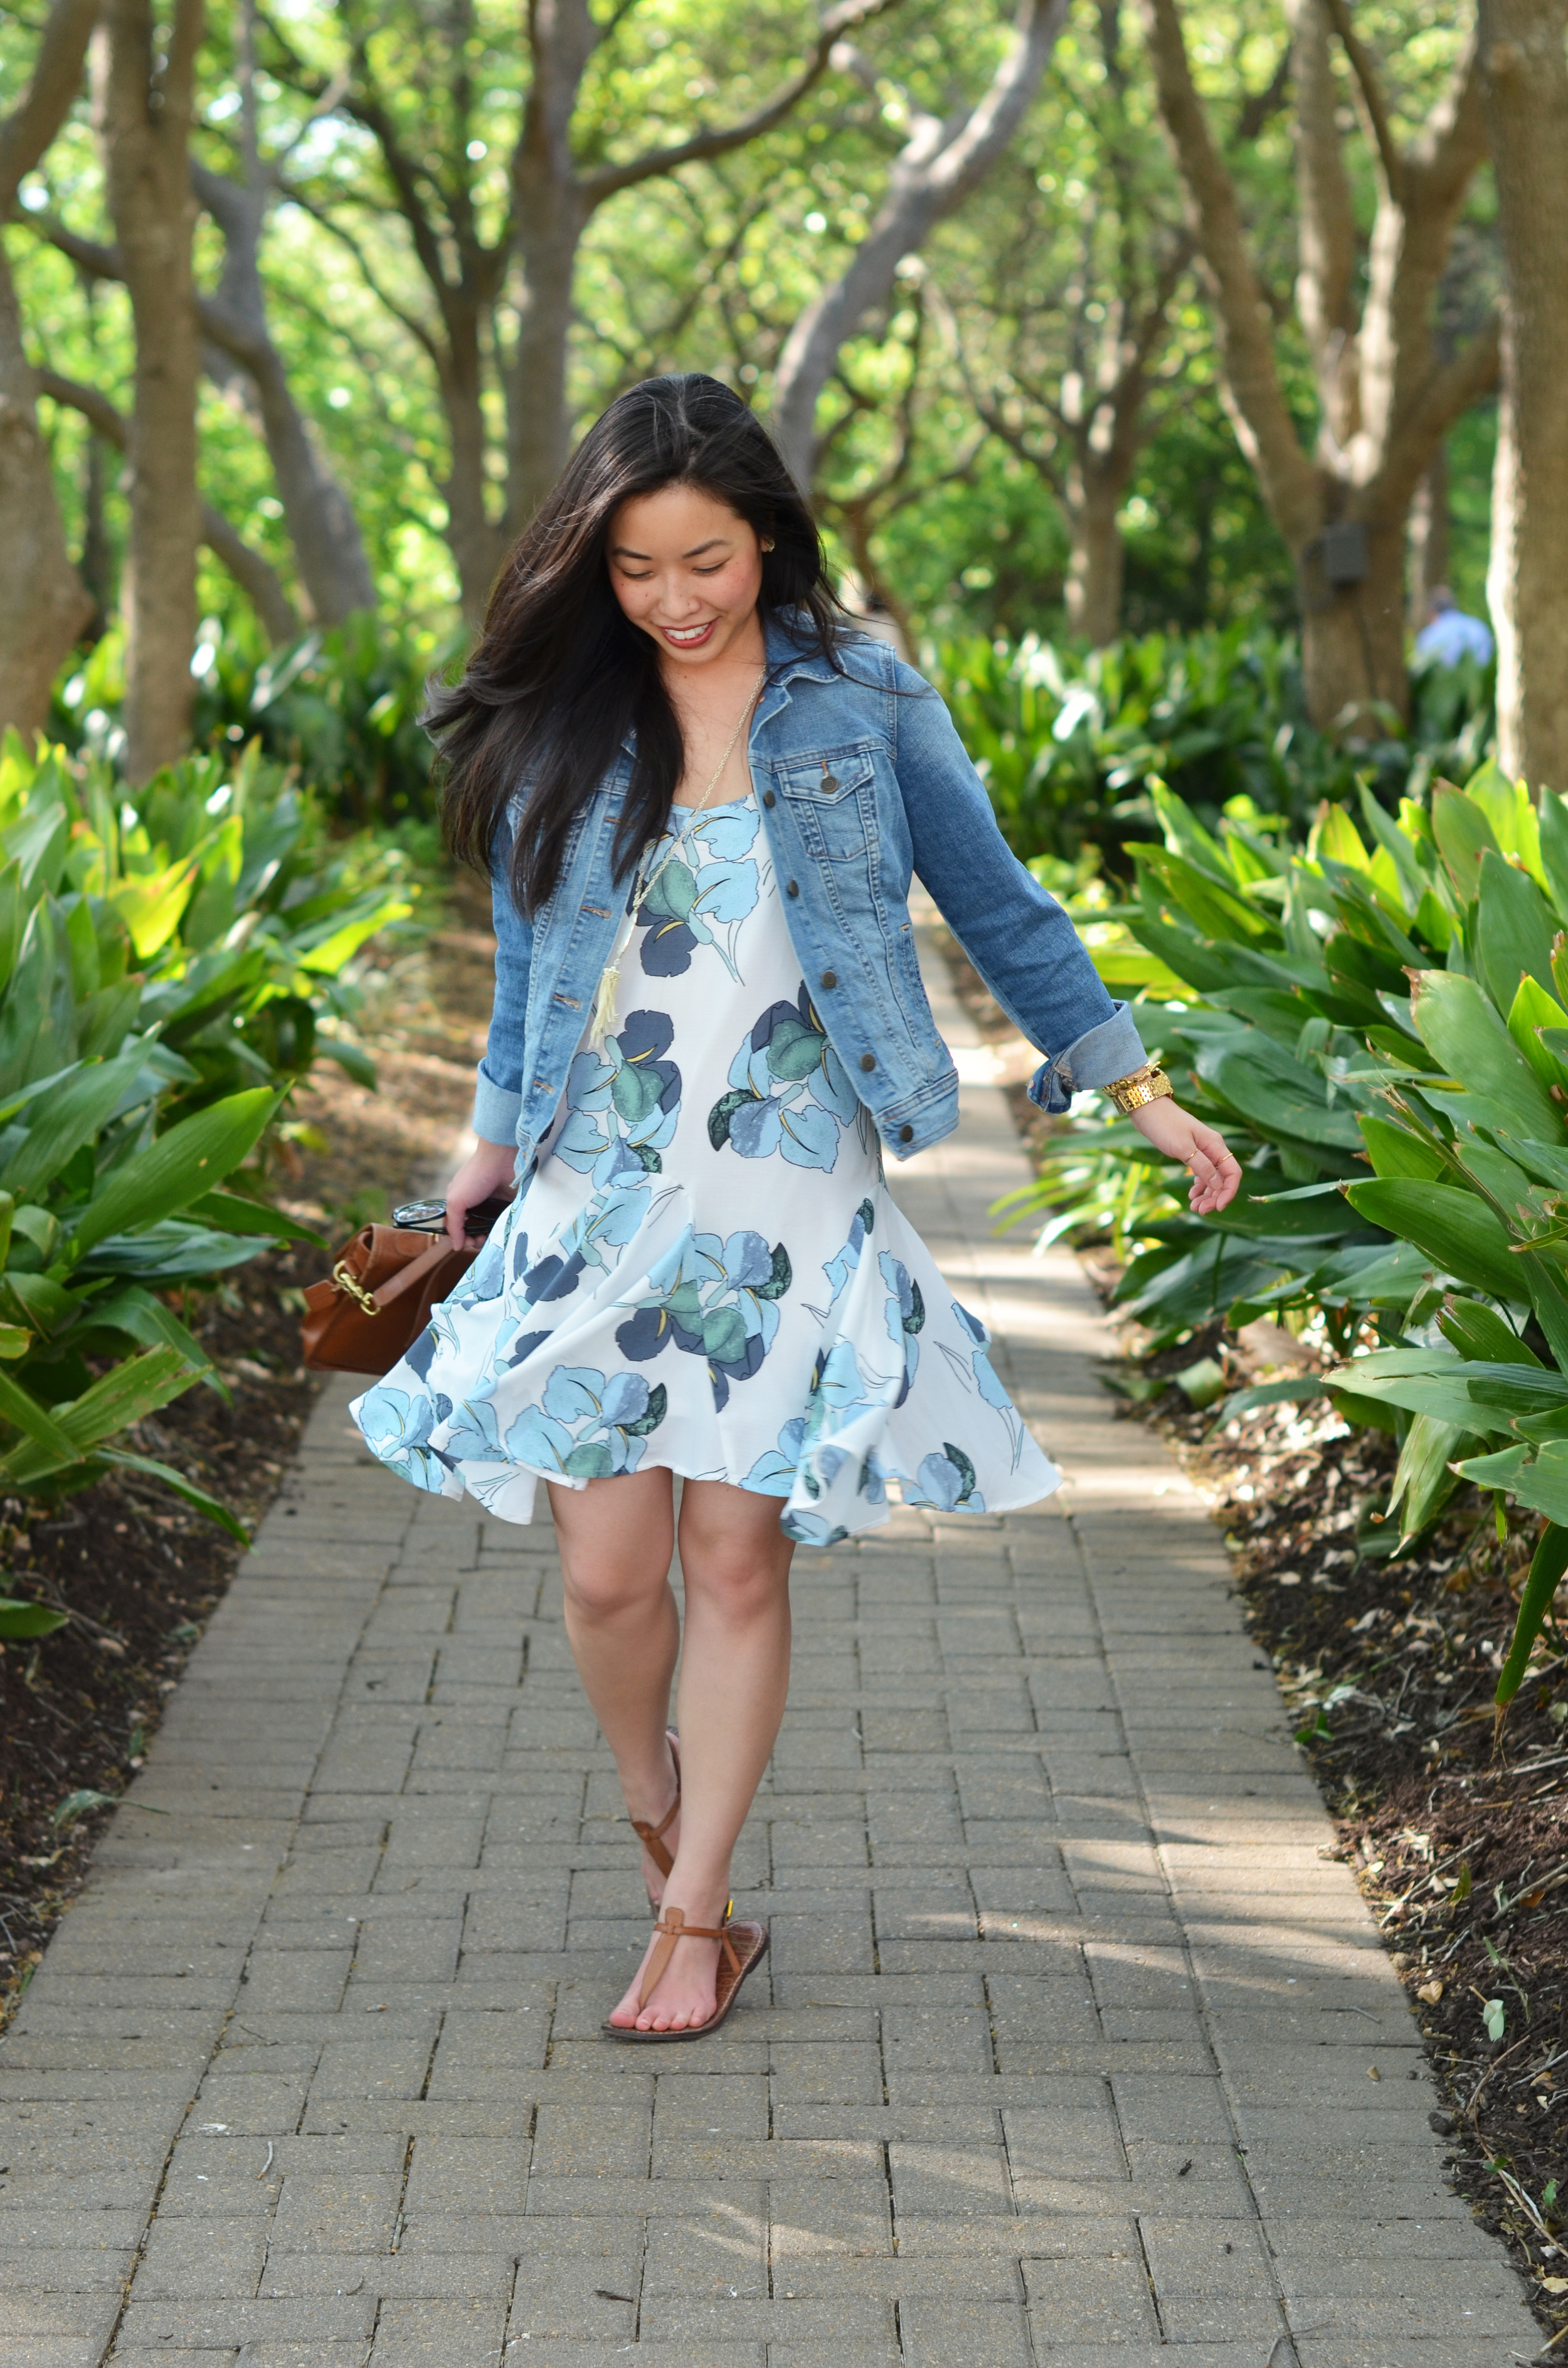 the floral ruffled dress & denim jacket -- jannadoan.com